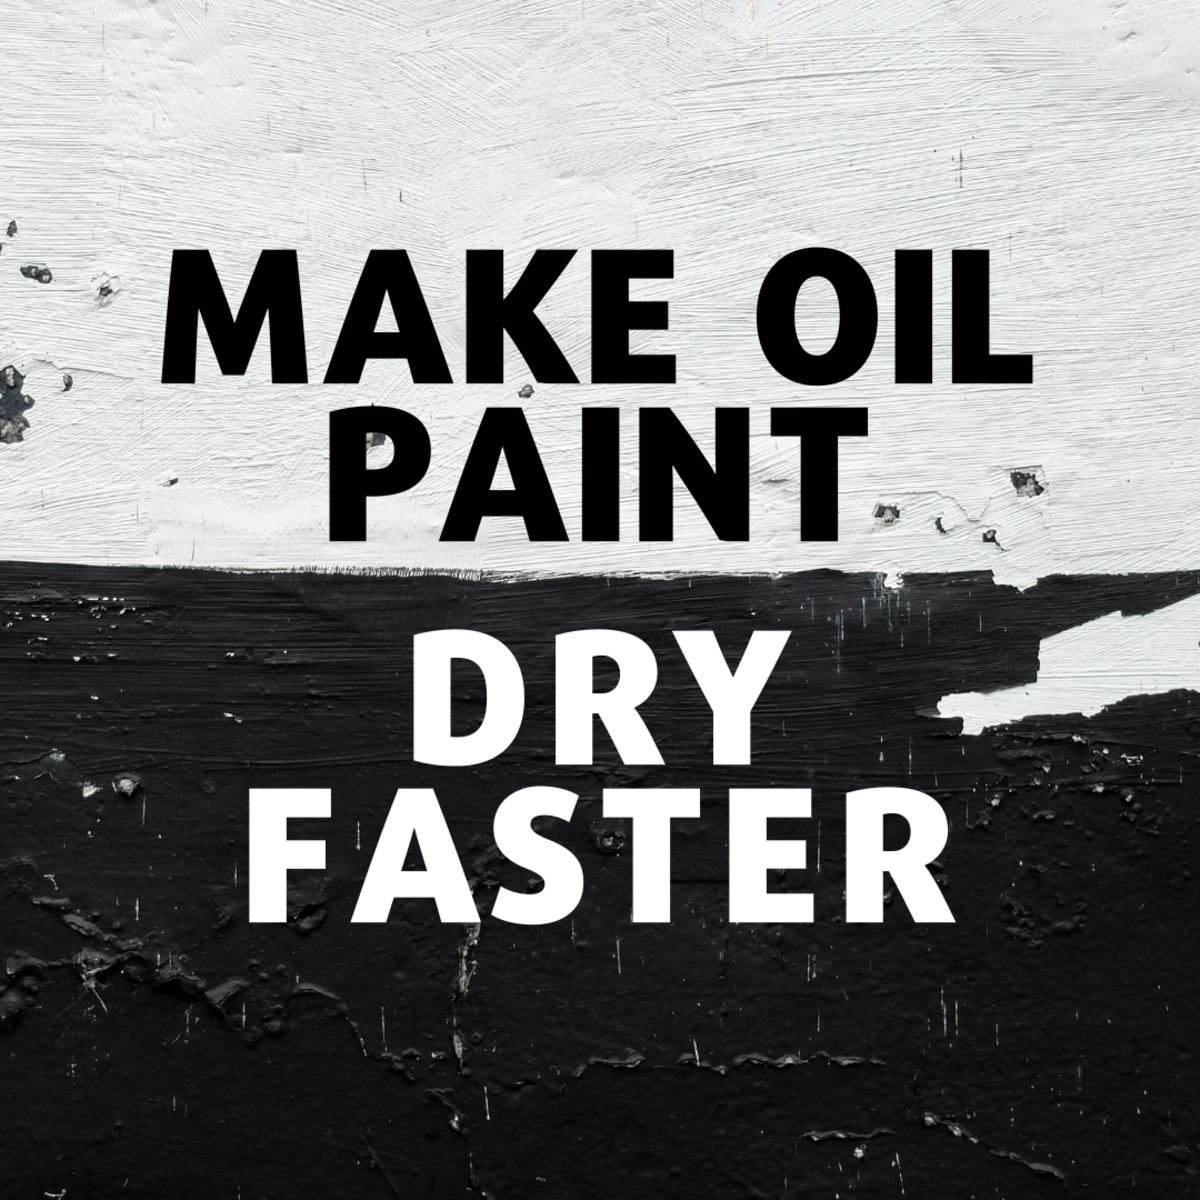 Learn why you might want to make oil paint dry faster and which additives can help make it happen.